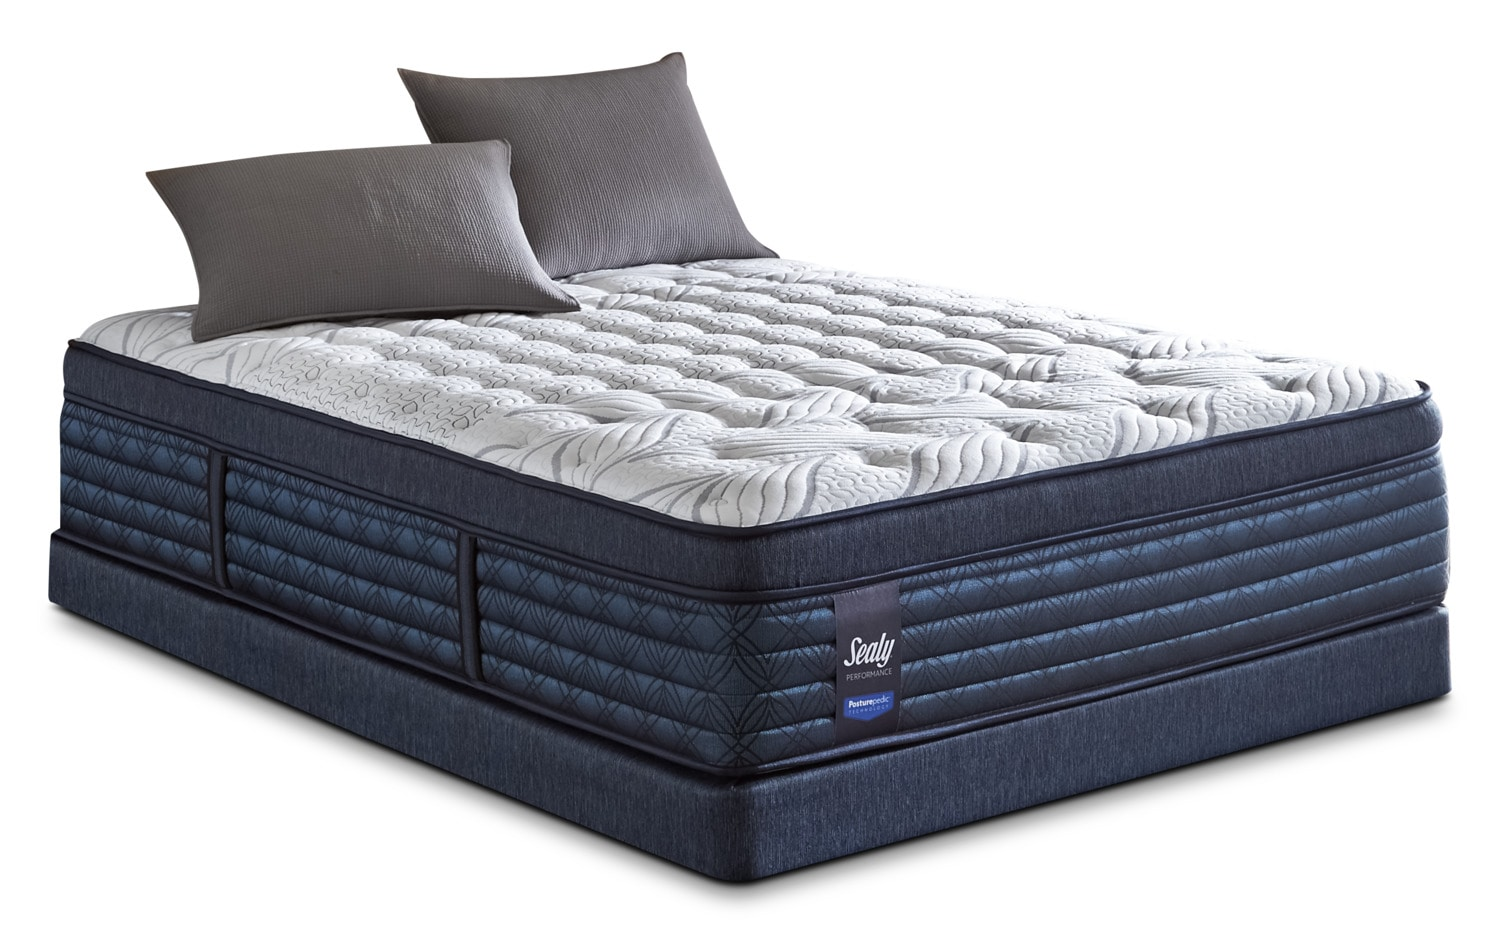 Sealy Posturepedic ProBack Hockenheim Euro-Top Firm King Mattress Set